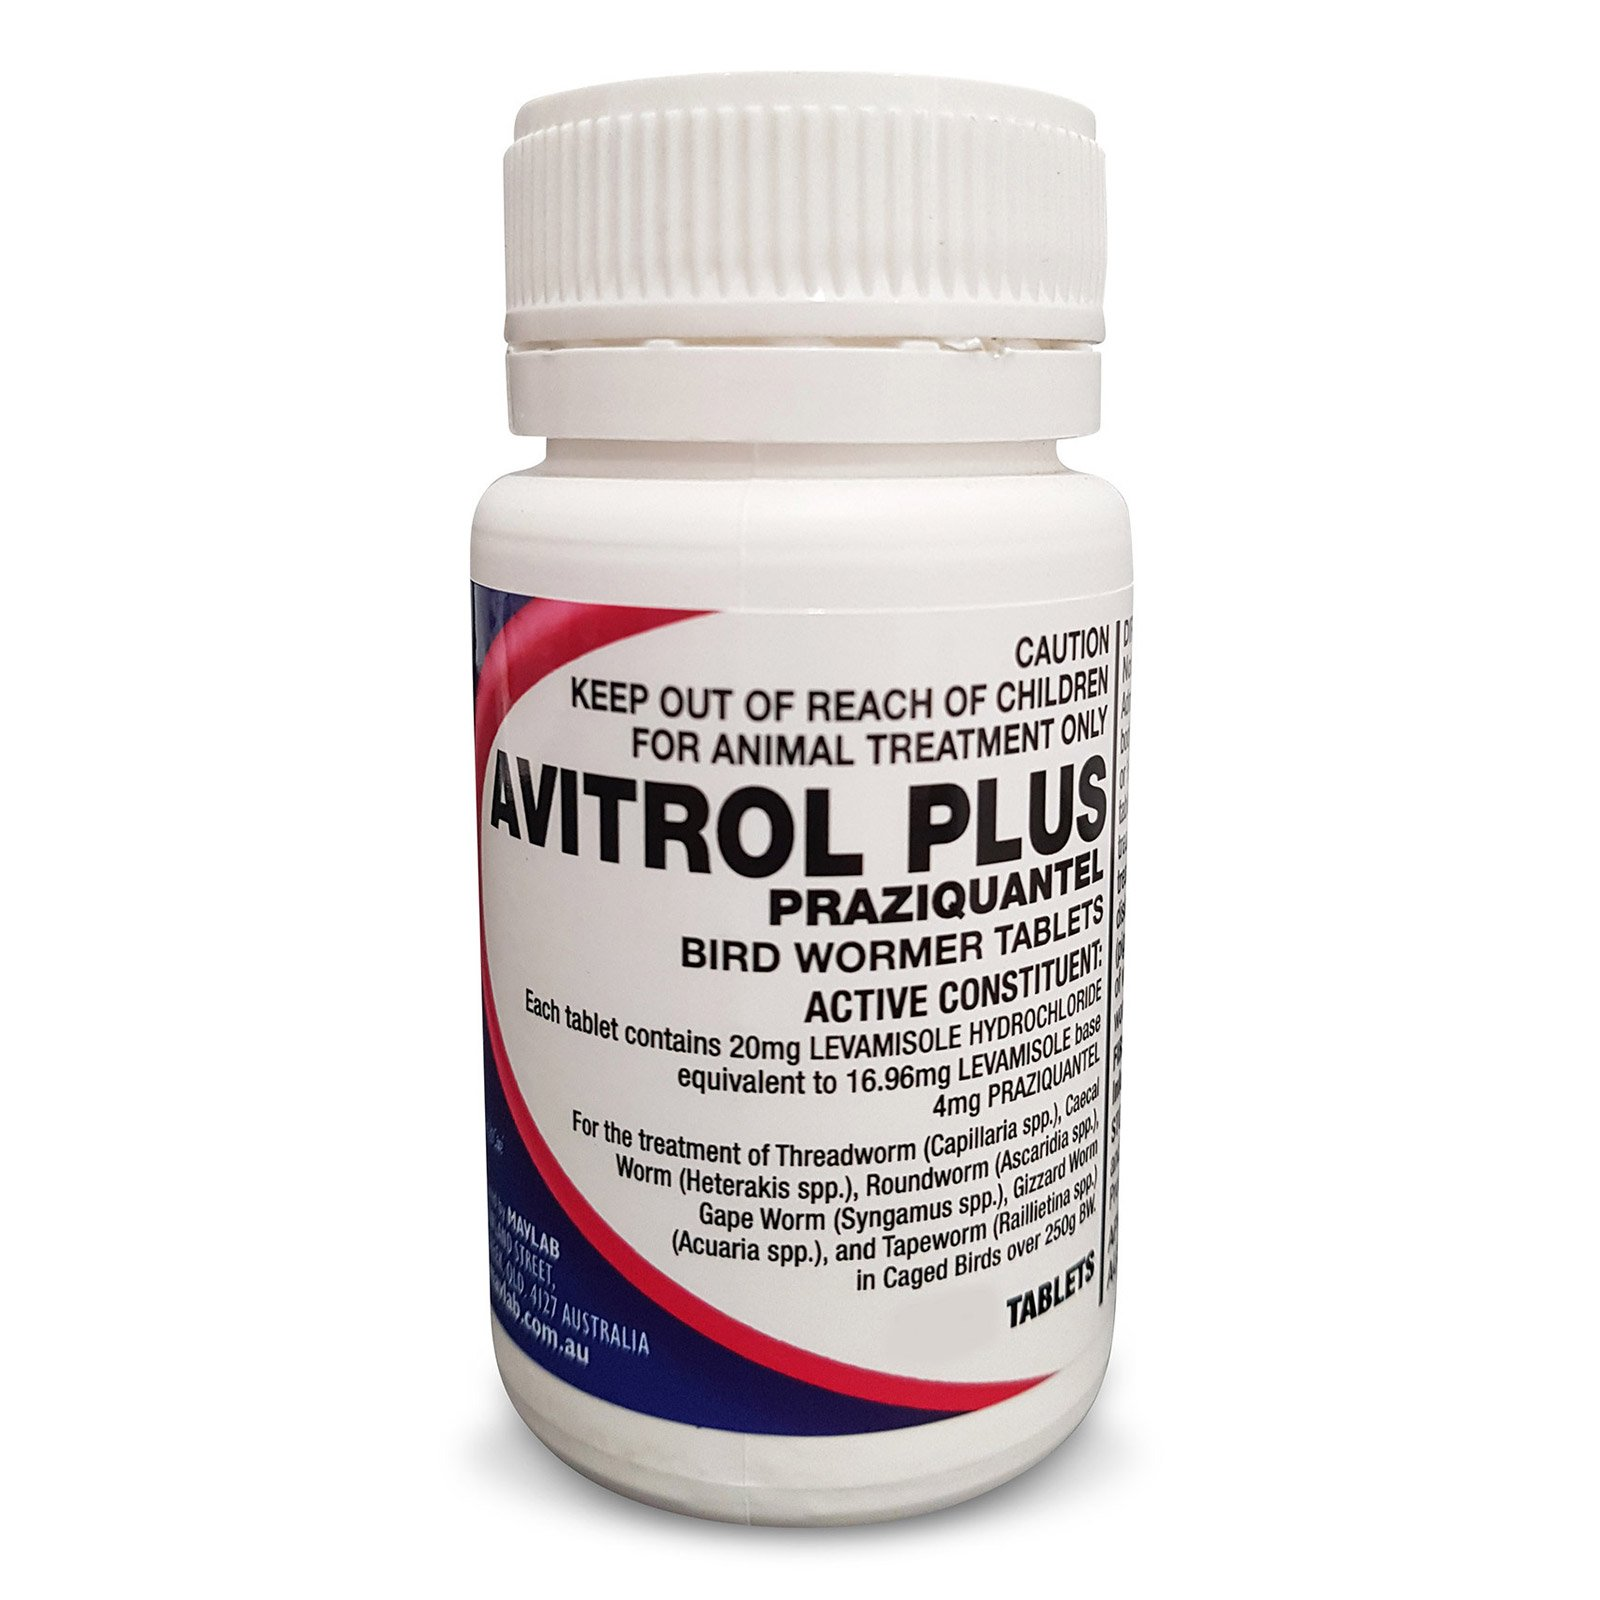 Avitrol Plus Wormer Tablets for Birds